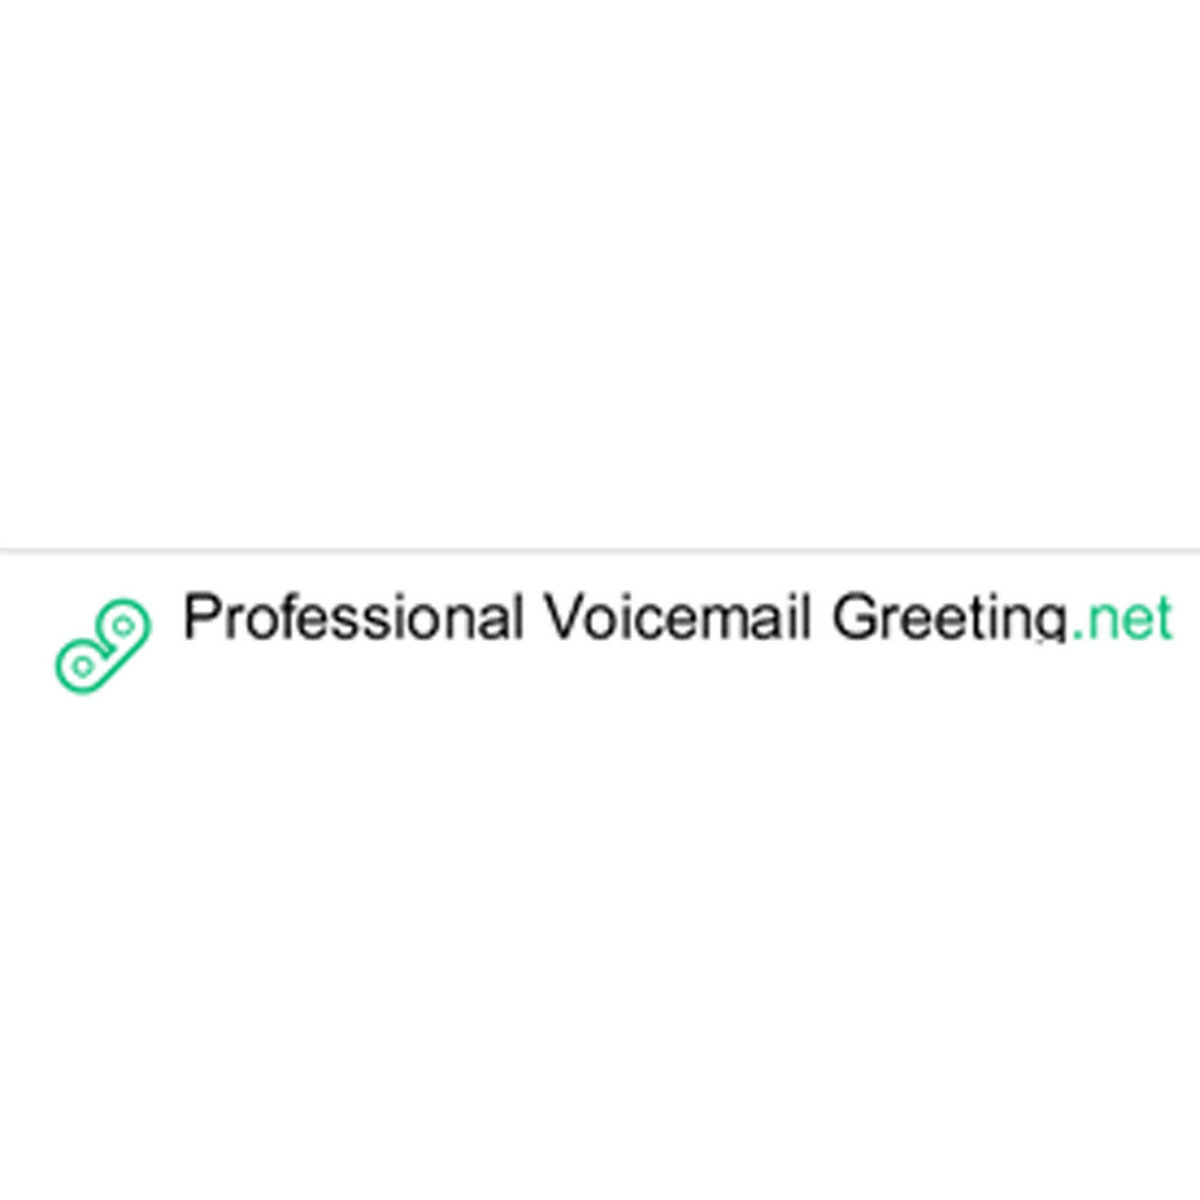 Best Voicemail Greetings Professional Voicemail Greeting